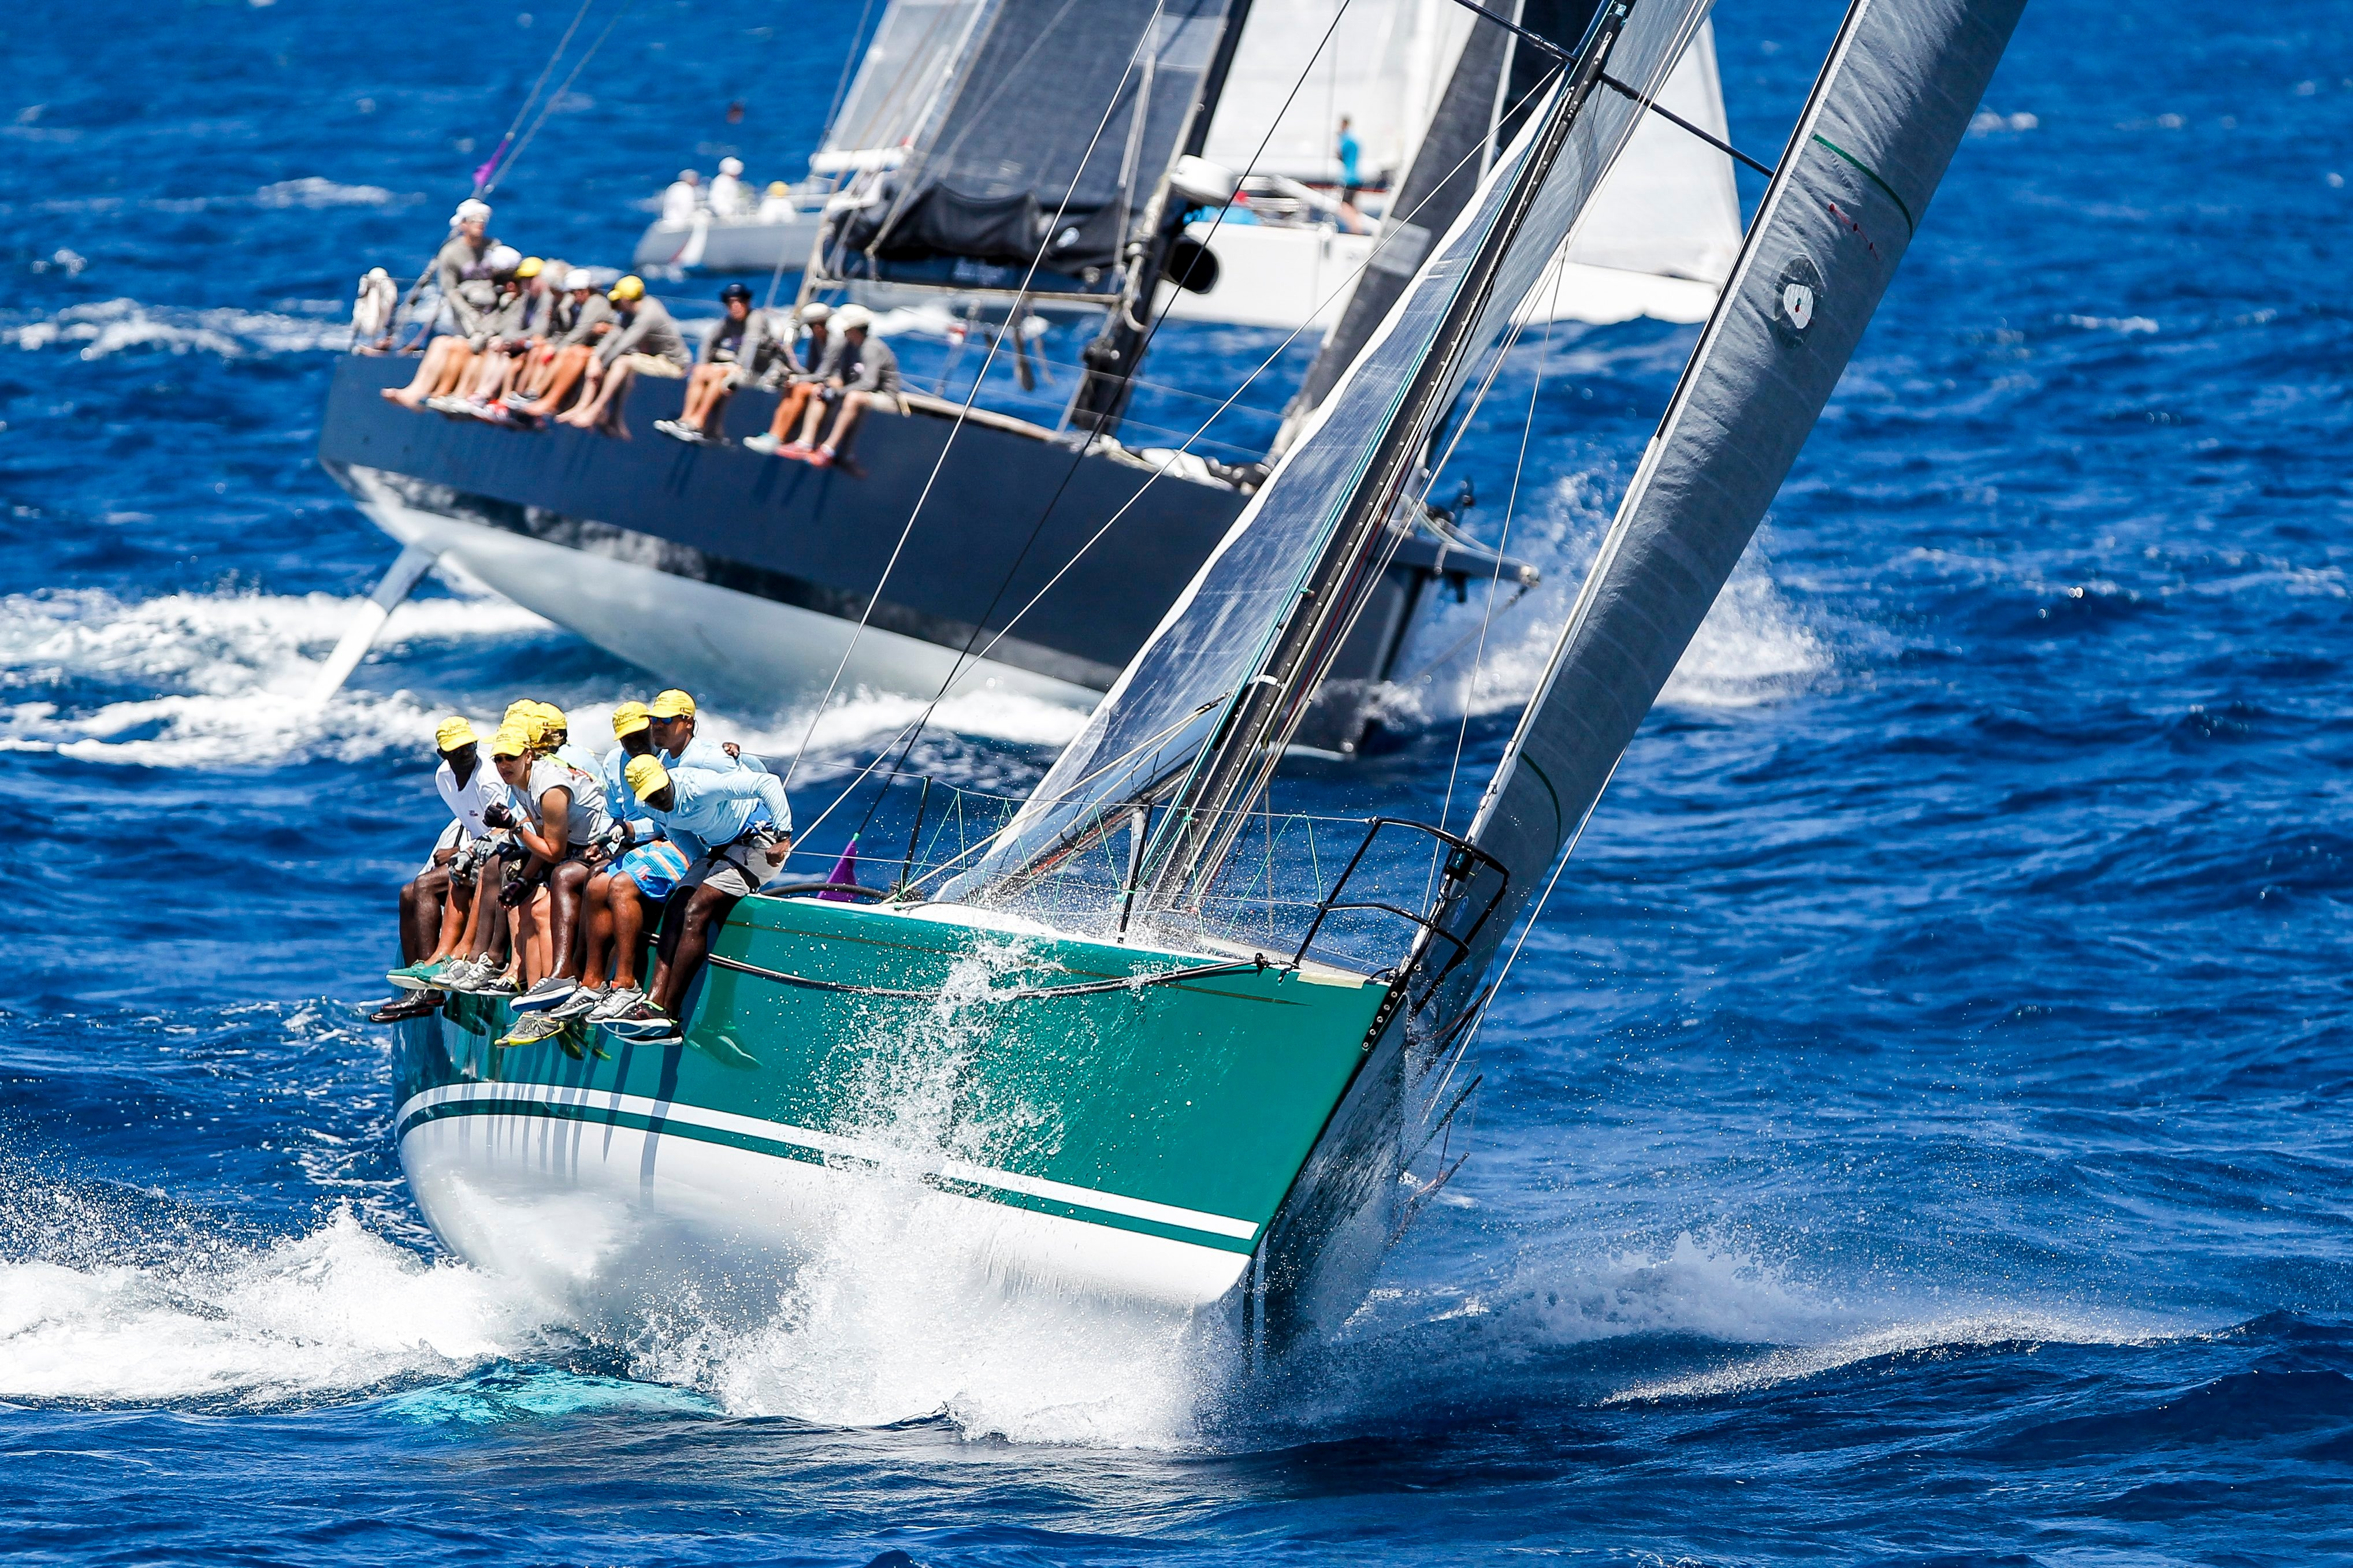 Antigua Sailing Week - four yachts racing in choppy waters